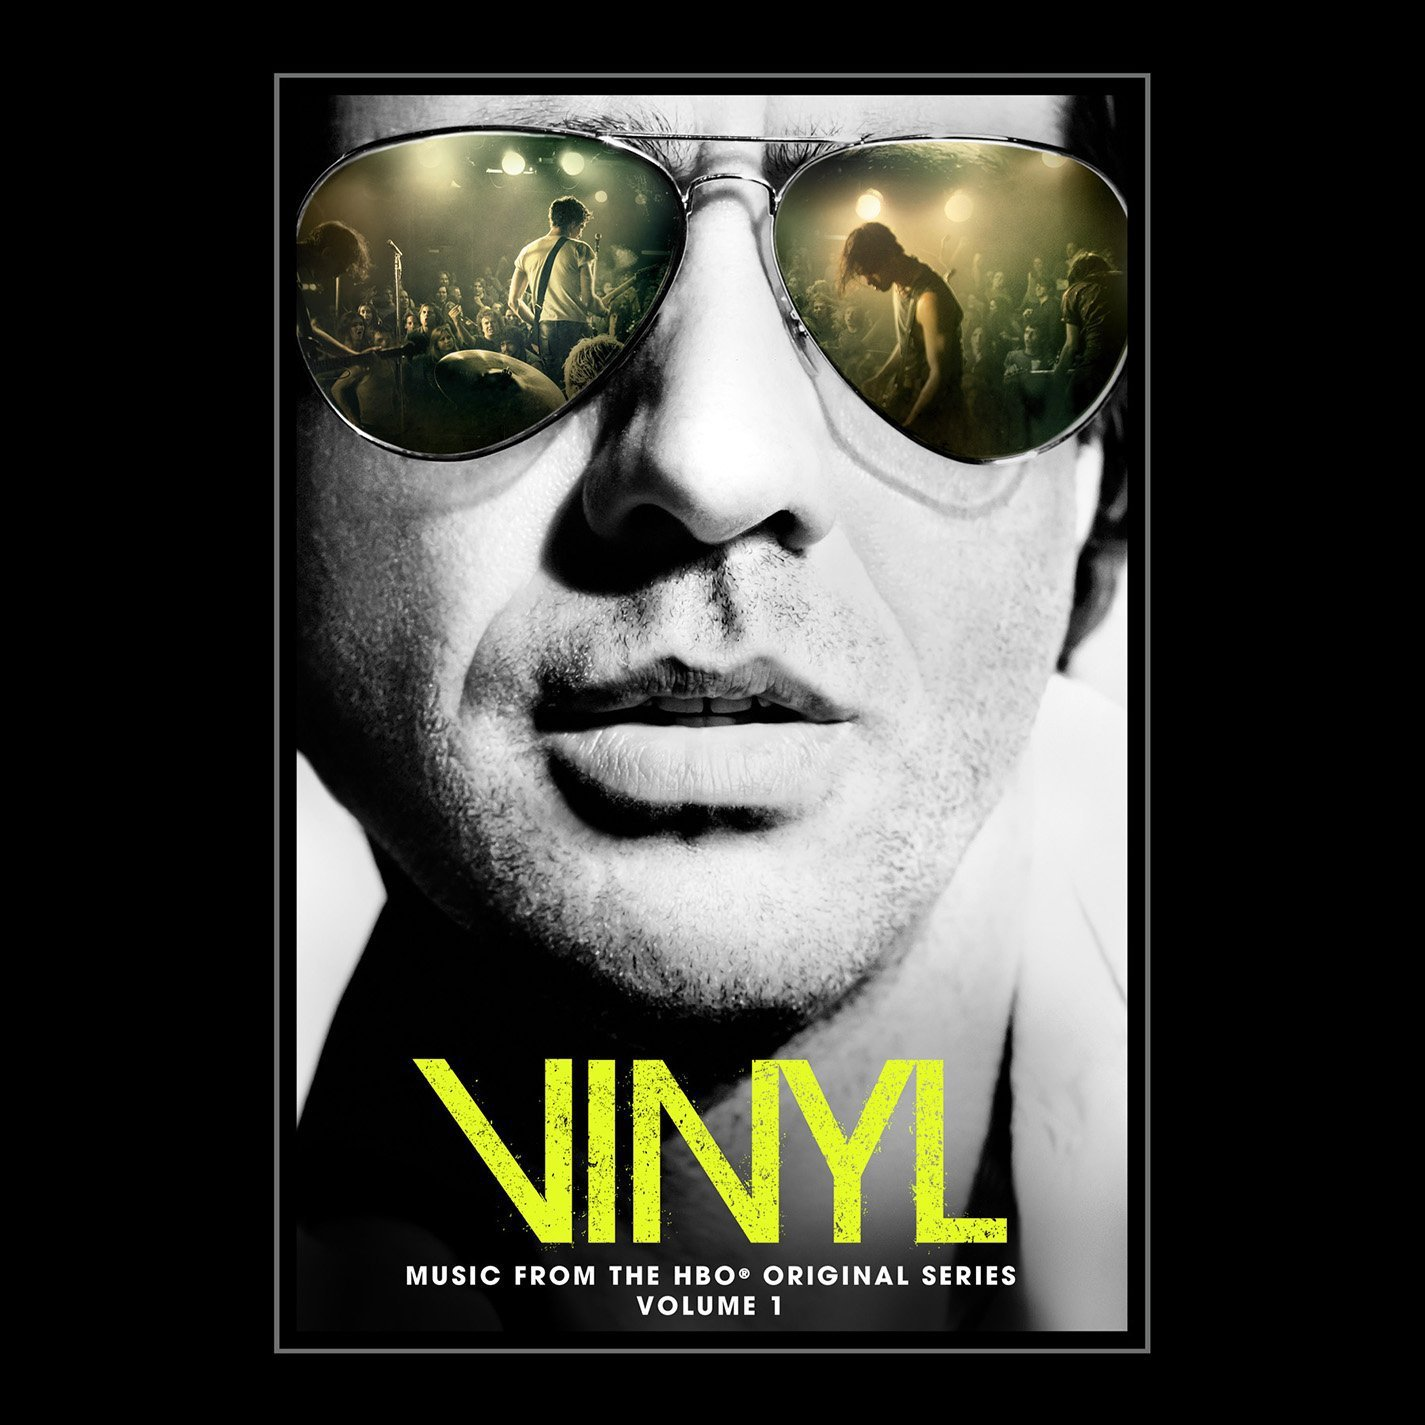 VINYL: Music From The HBO Original Series - Vol 1 : VINYL ...